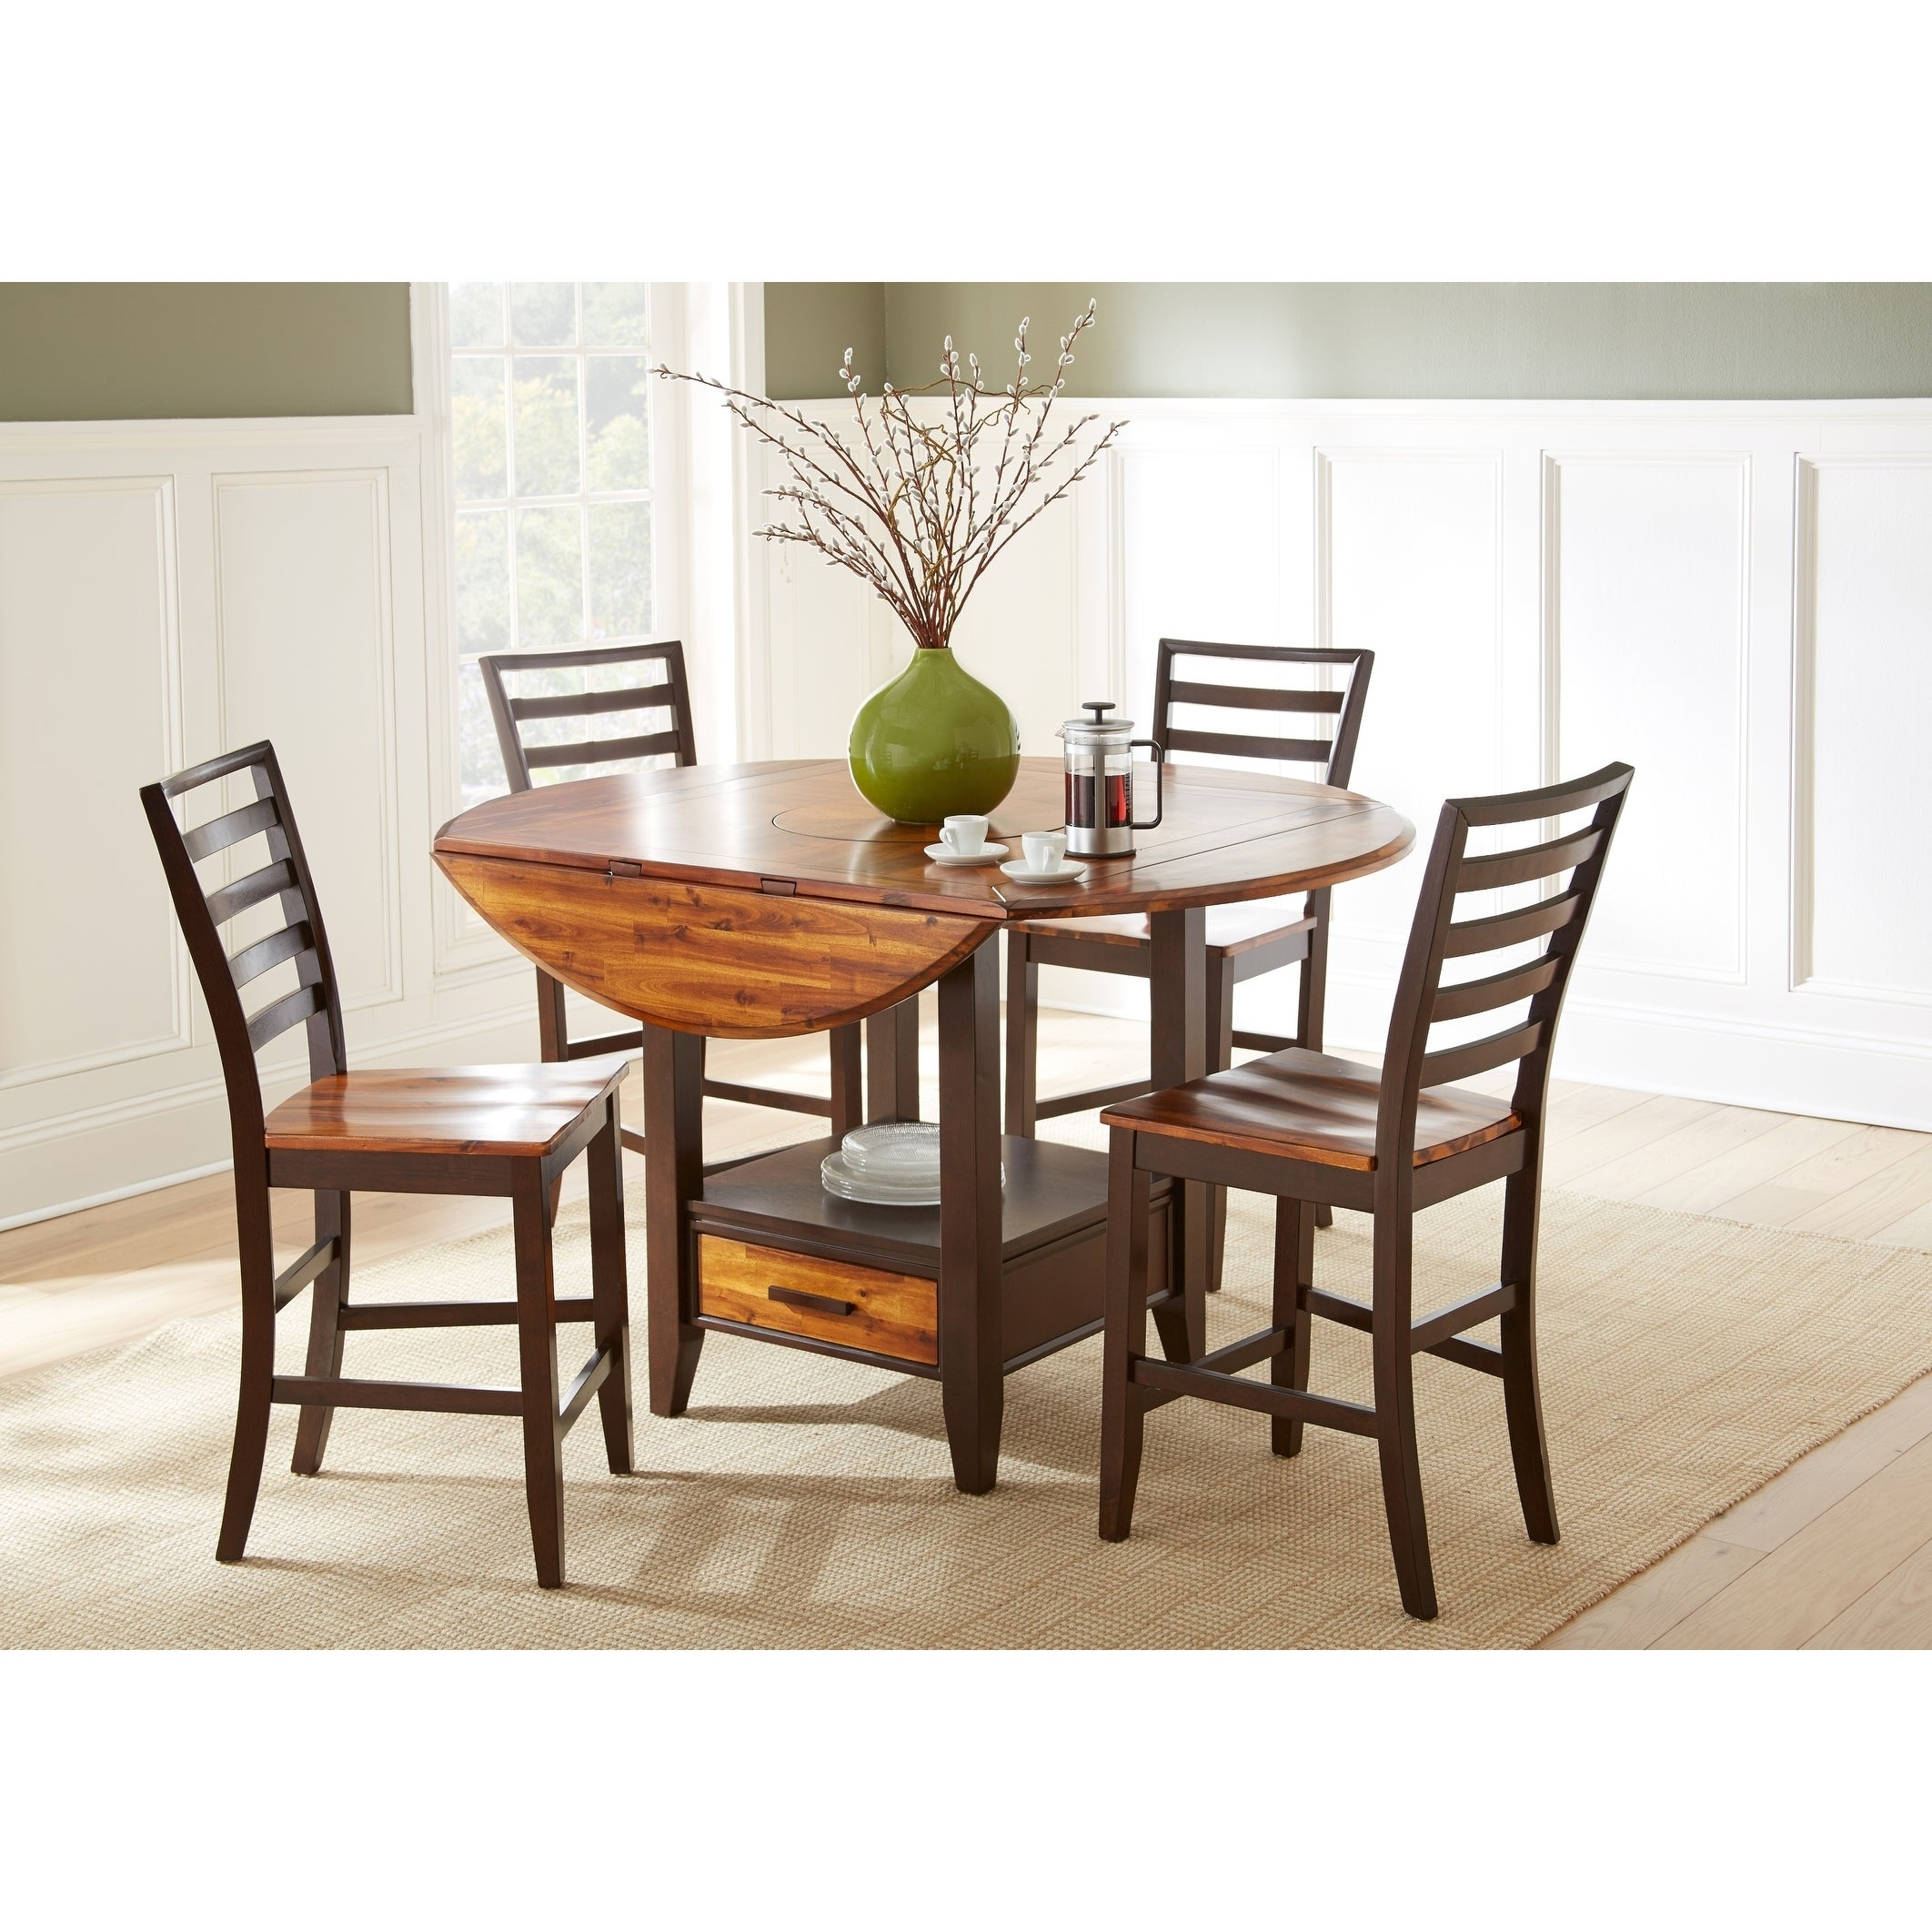 0d011feb506a Buy Counter Height Kitchen   Dining Room Sets Online at Overstock ...